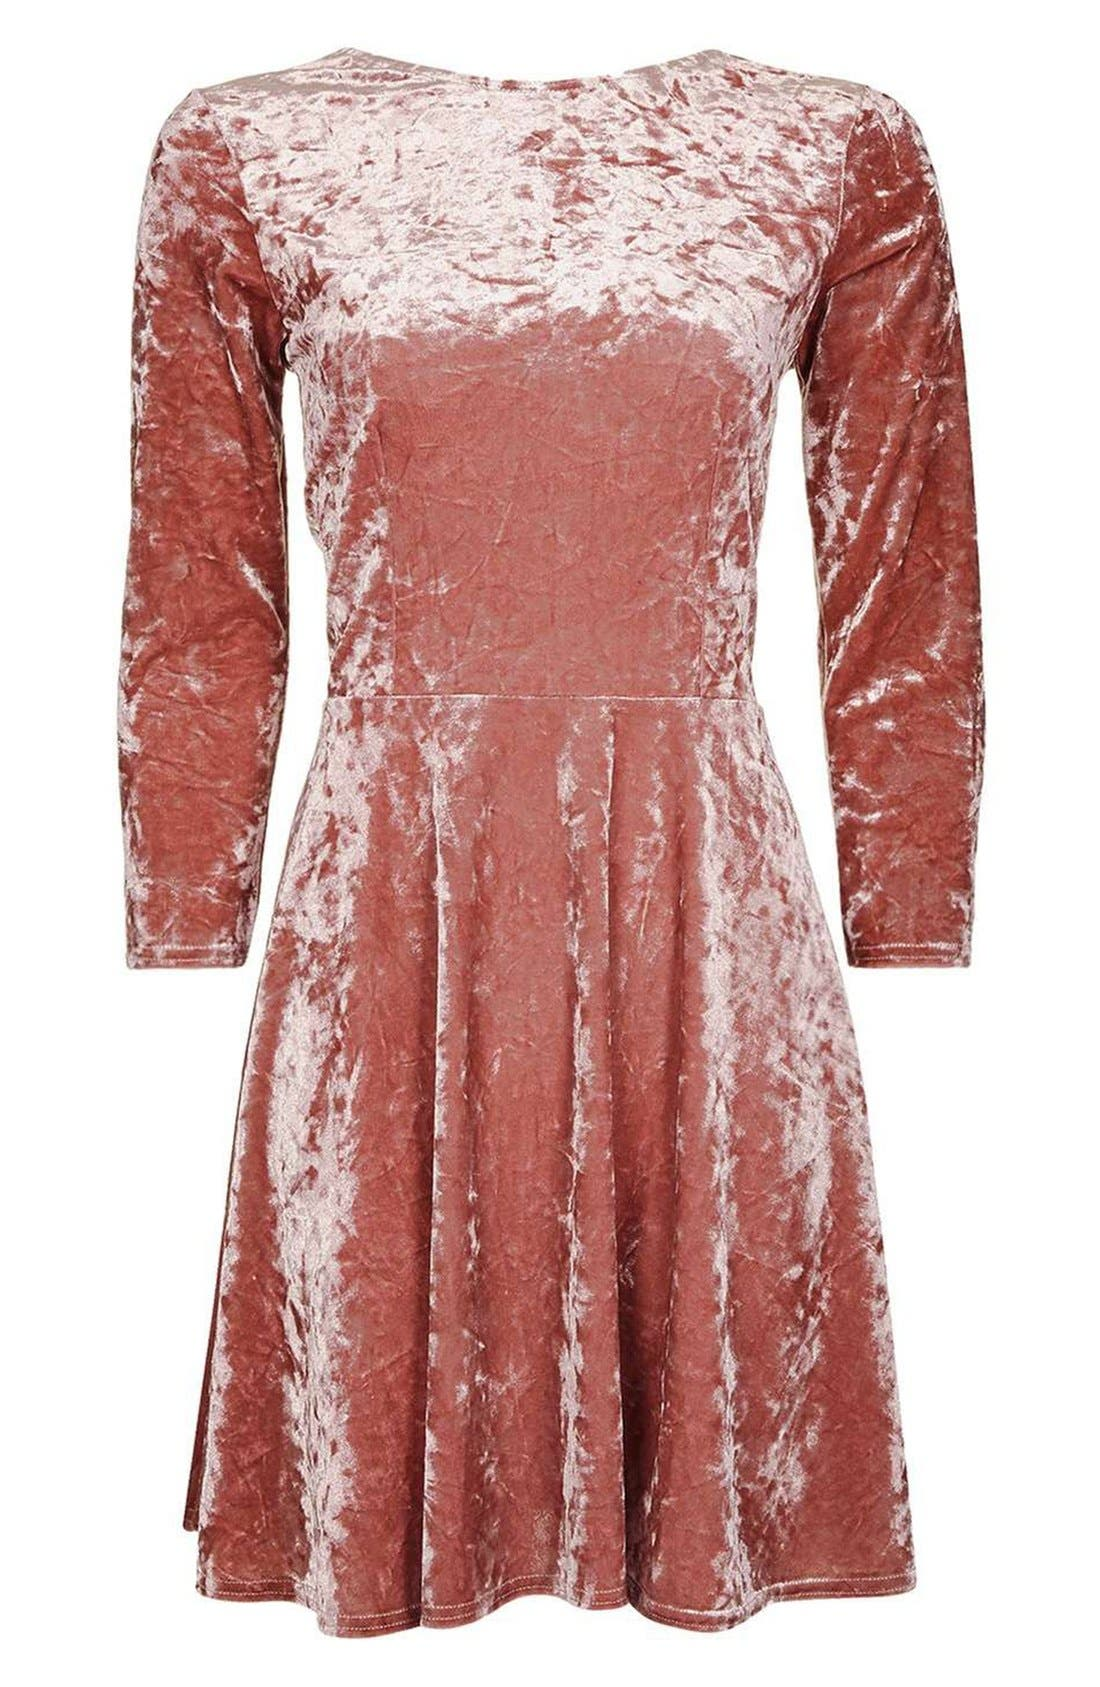 Crushed Velvet Dress,                             Alternate thumbnail 4, color,                             650